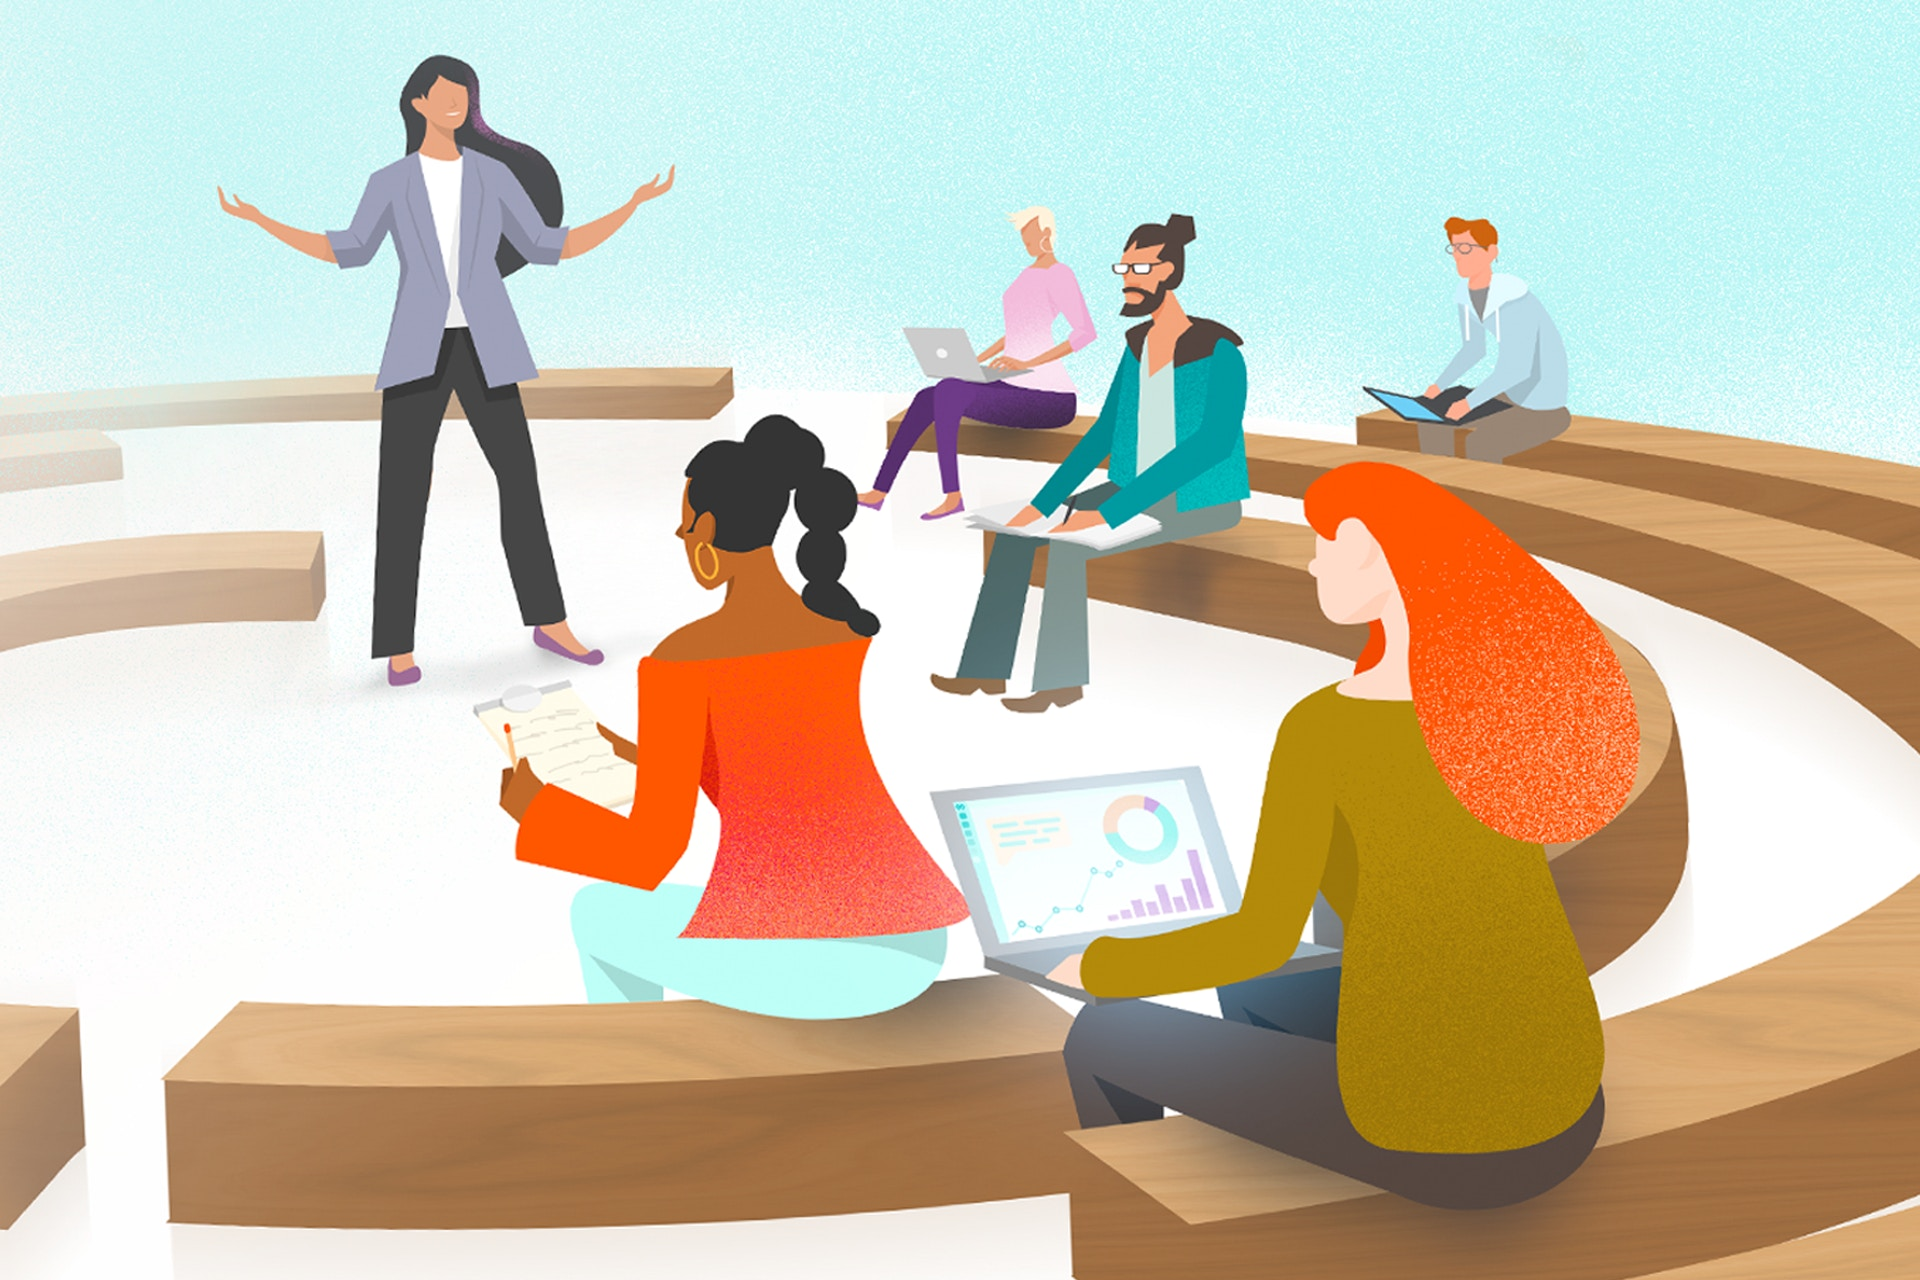 A group of people sitting around a classroom in a circle learning about Meltwater Academy, Meltwater's online training program that offers free courses in PR, social media, and marketing.